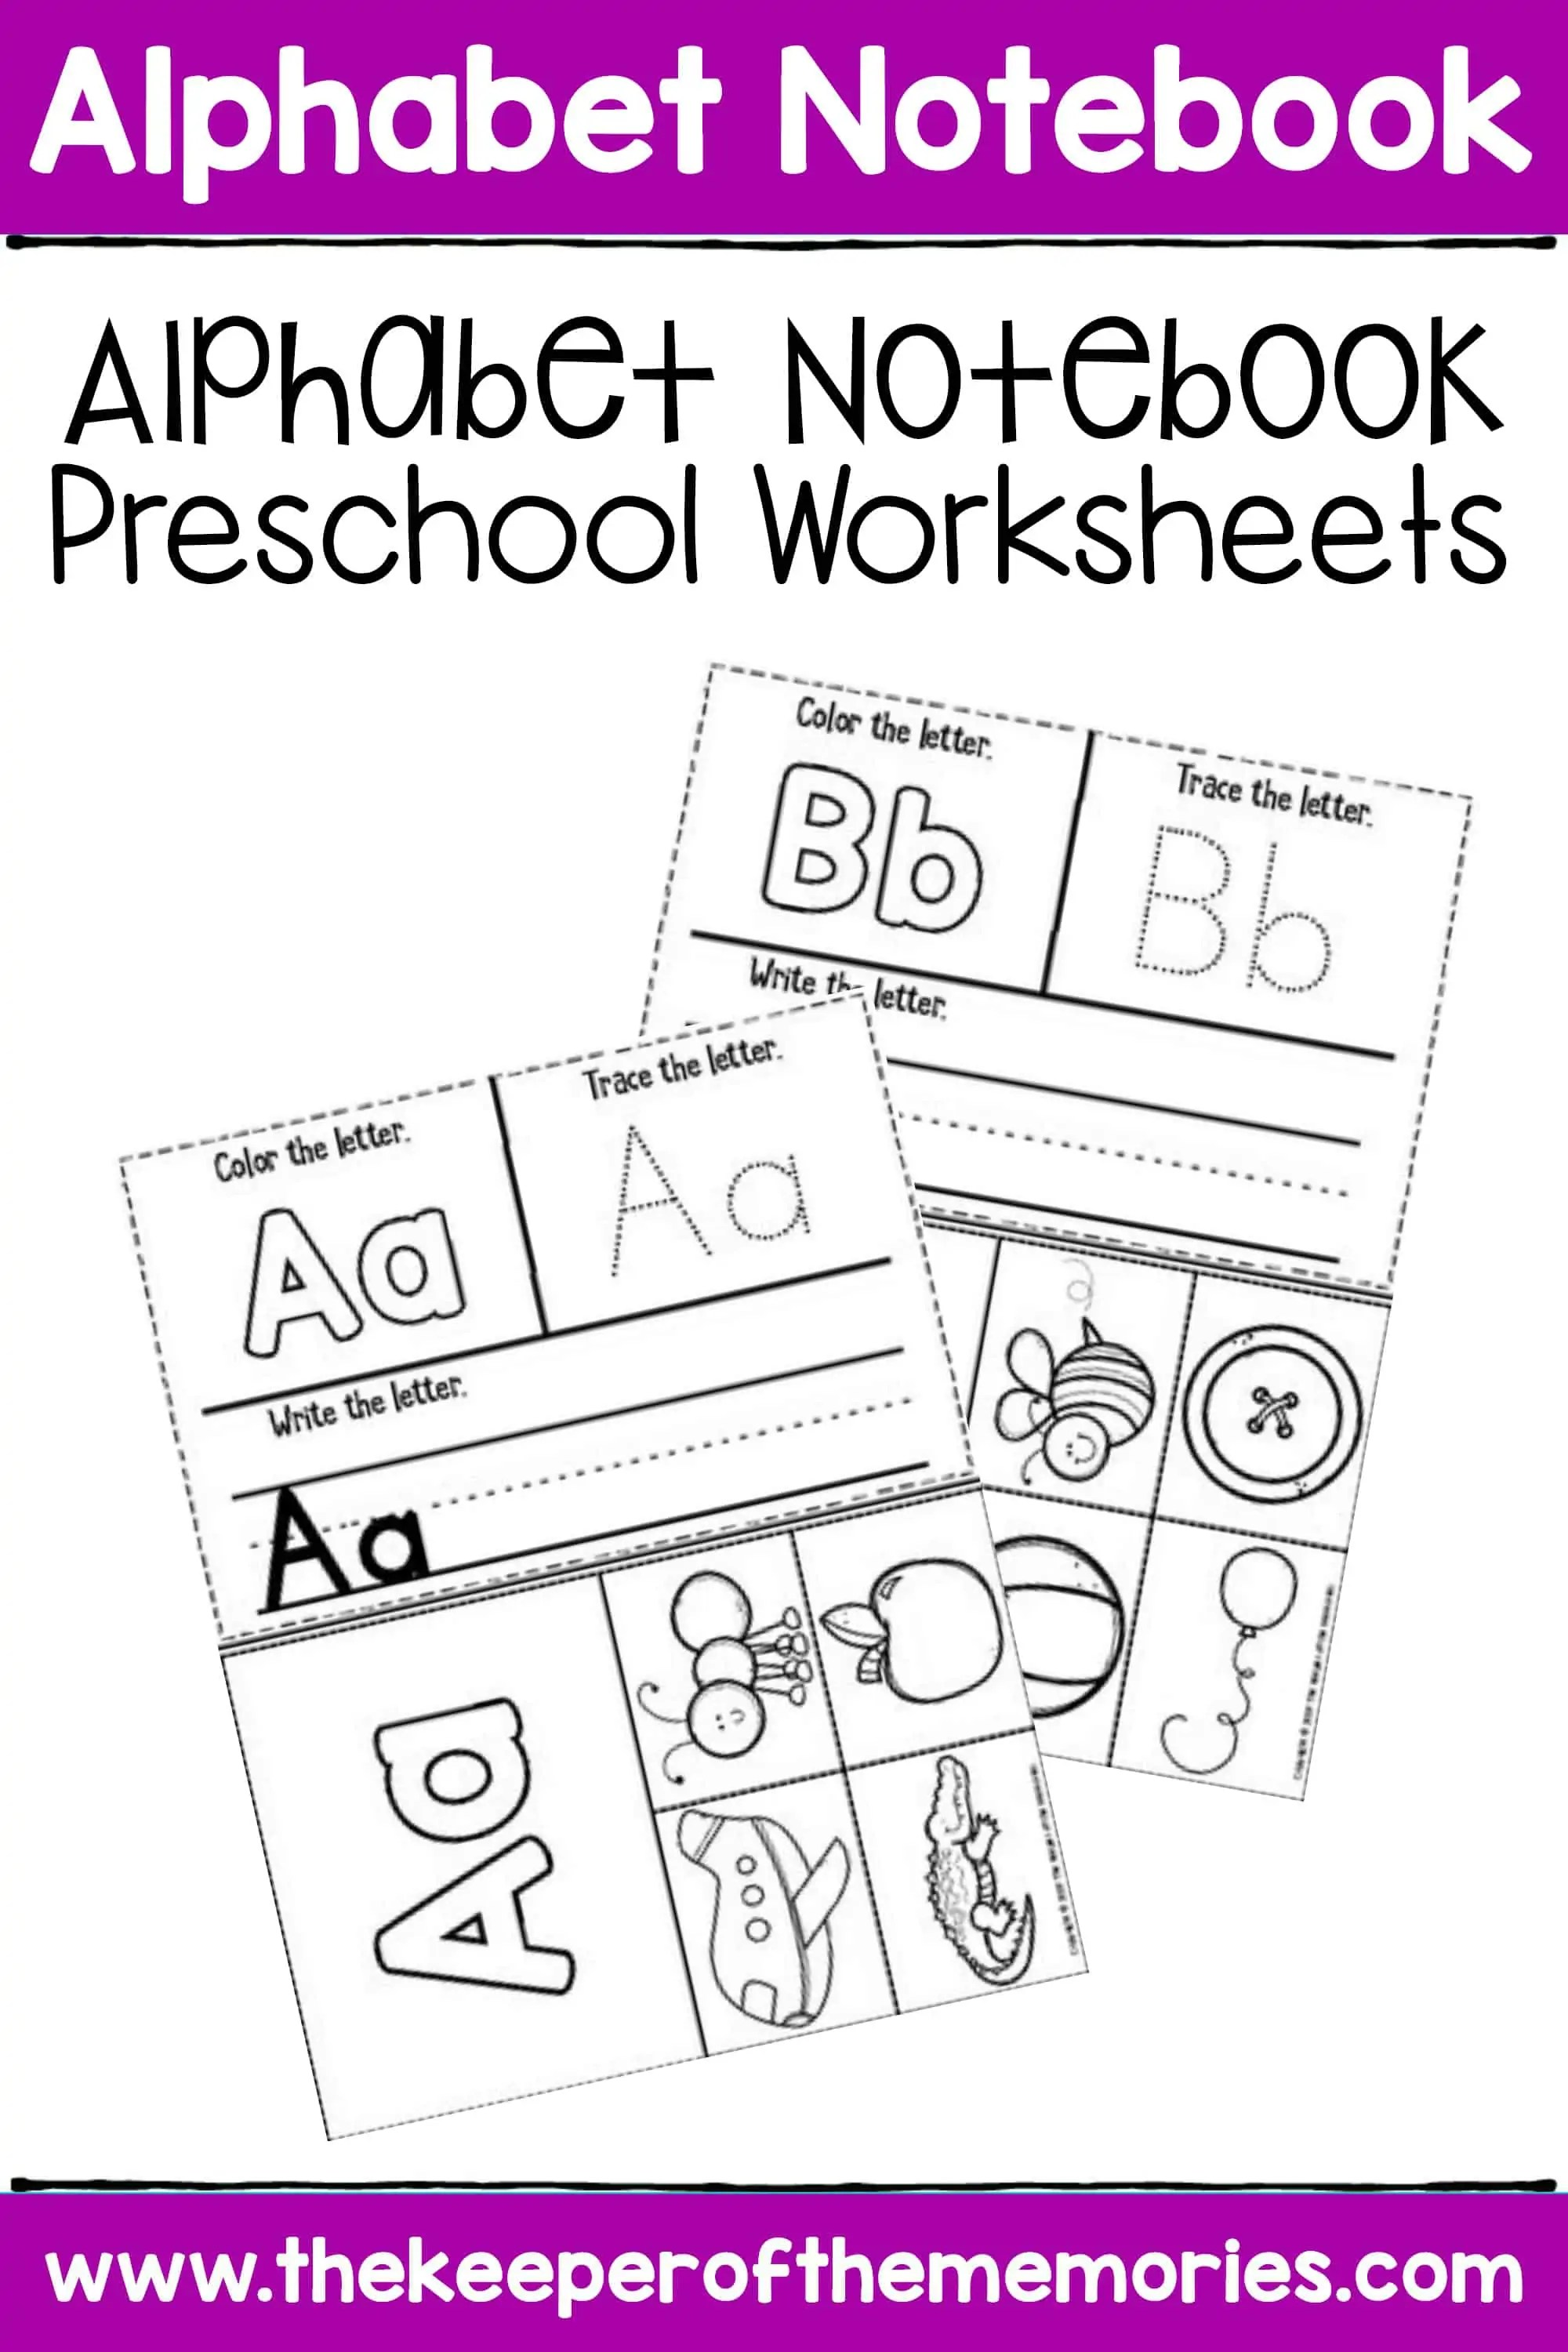 Free Printable Alphabet Notebook Preschool Worksheets